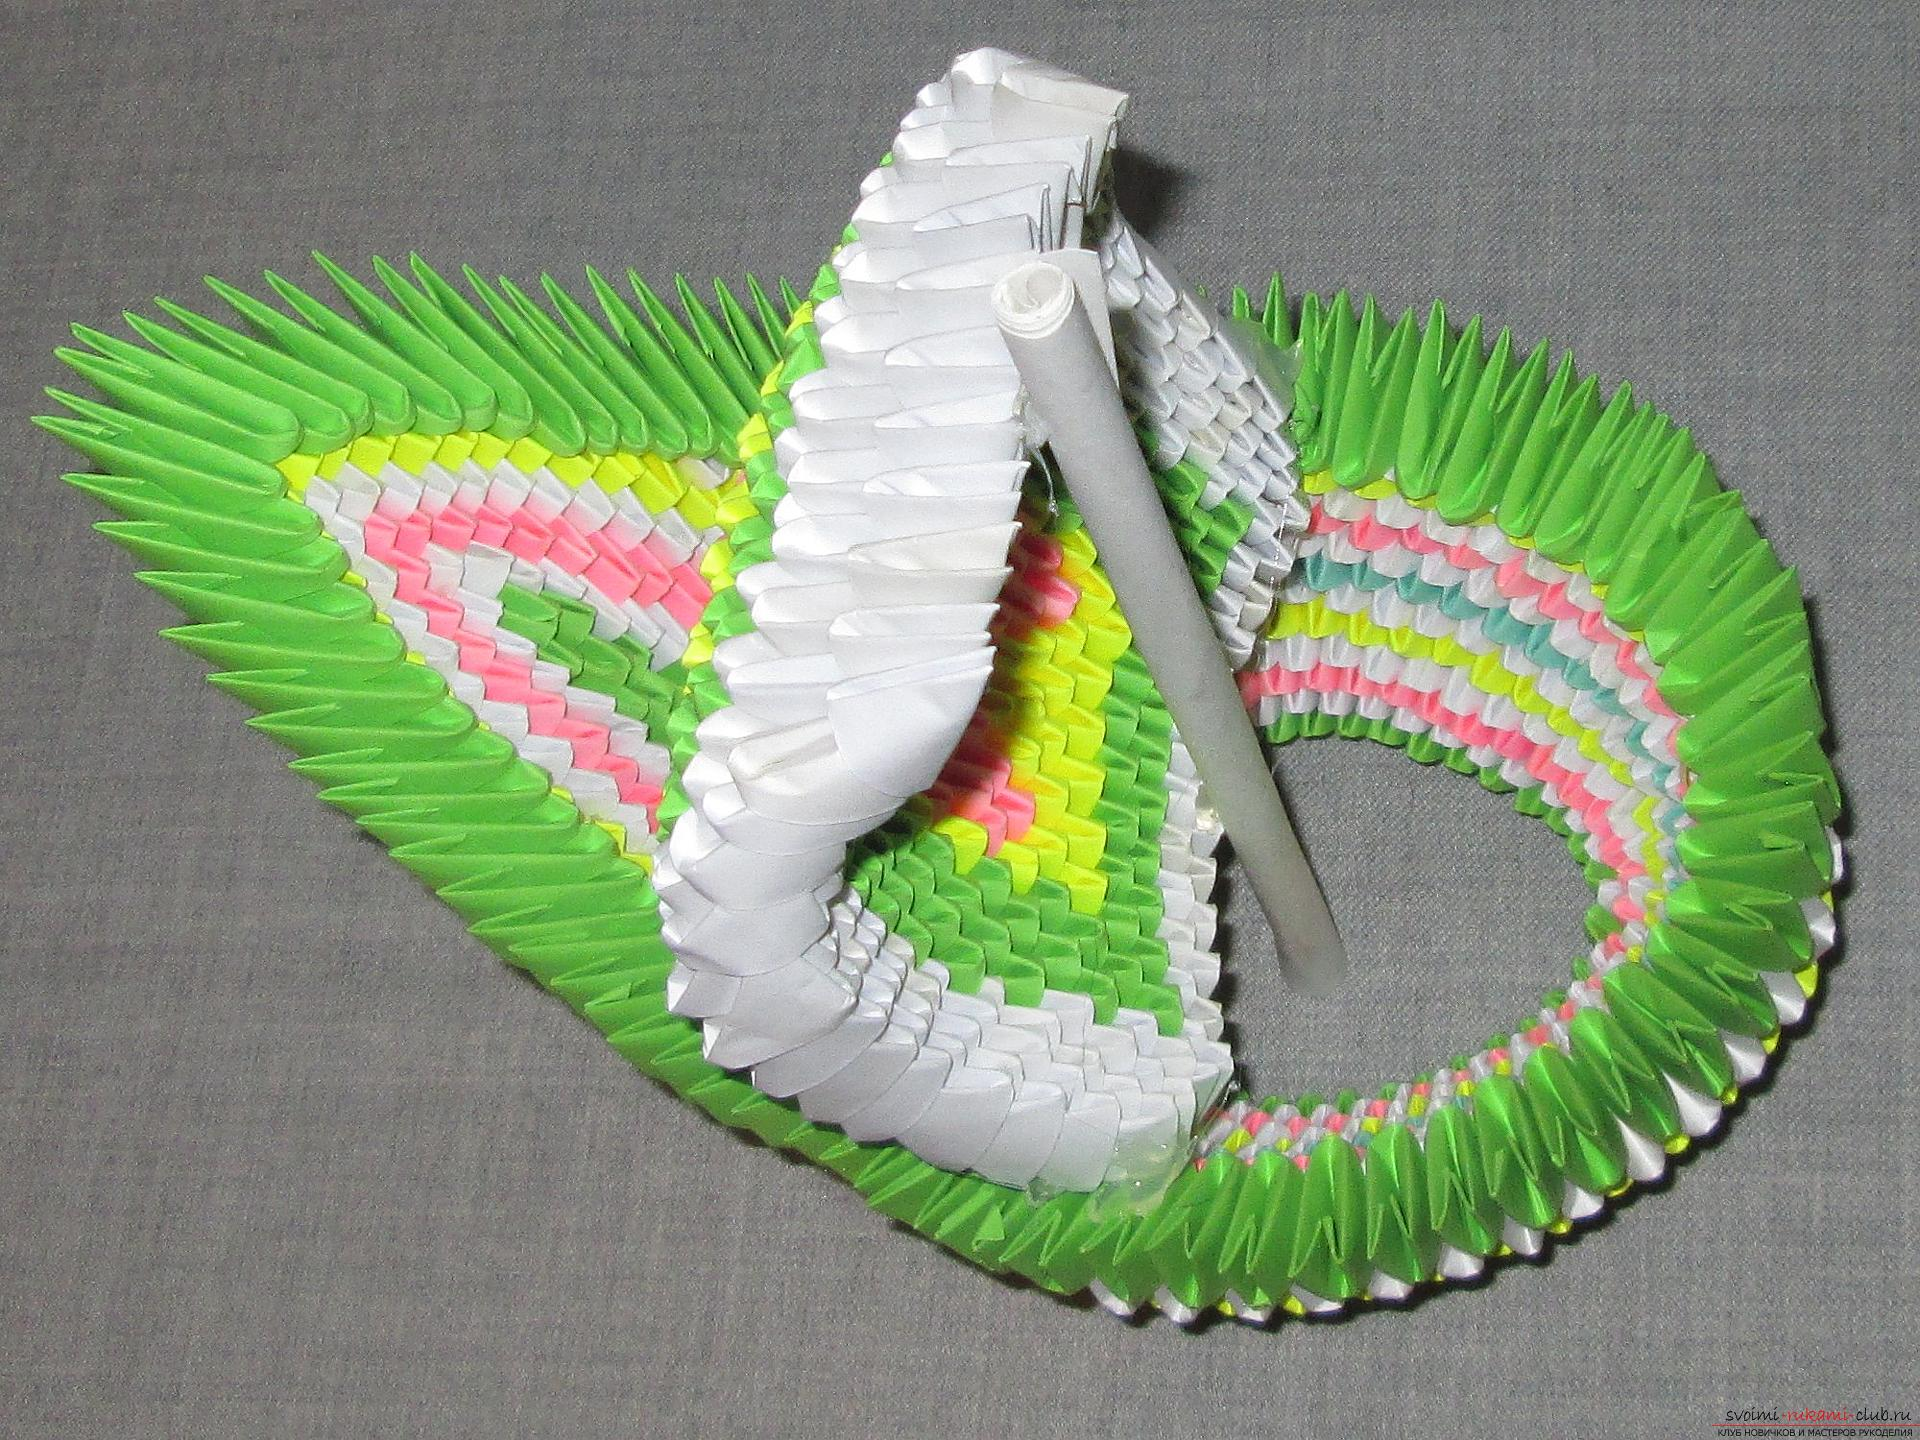 This master class will teach how to make your own hands from a modular origami boat .. Photo №18